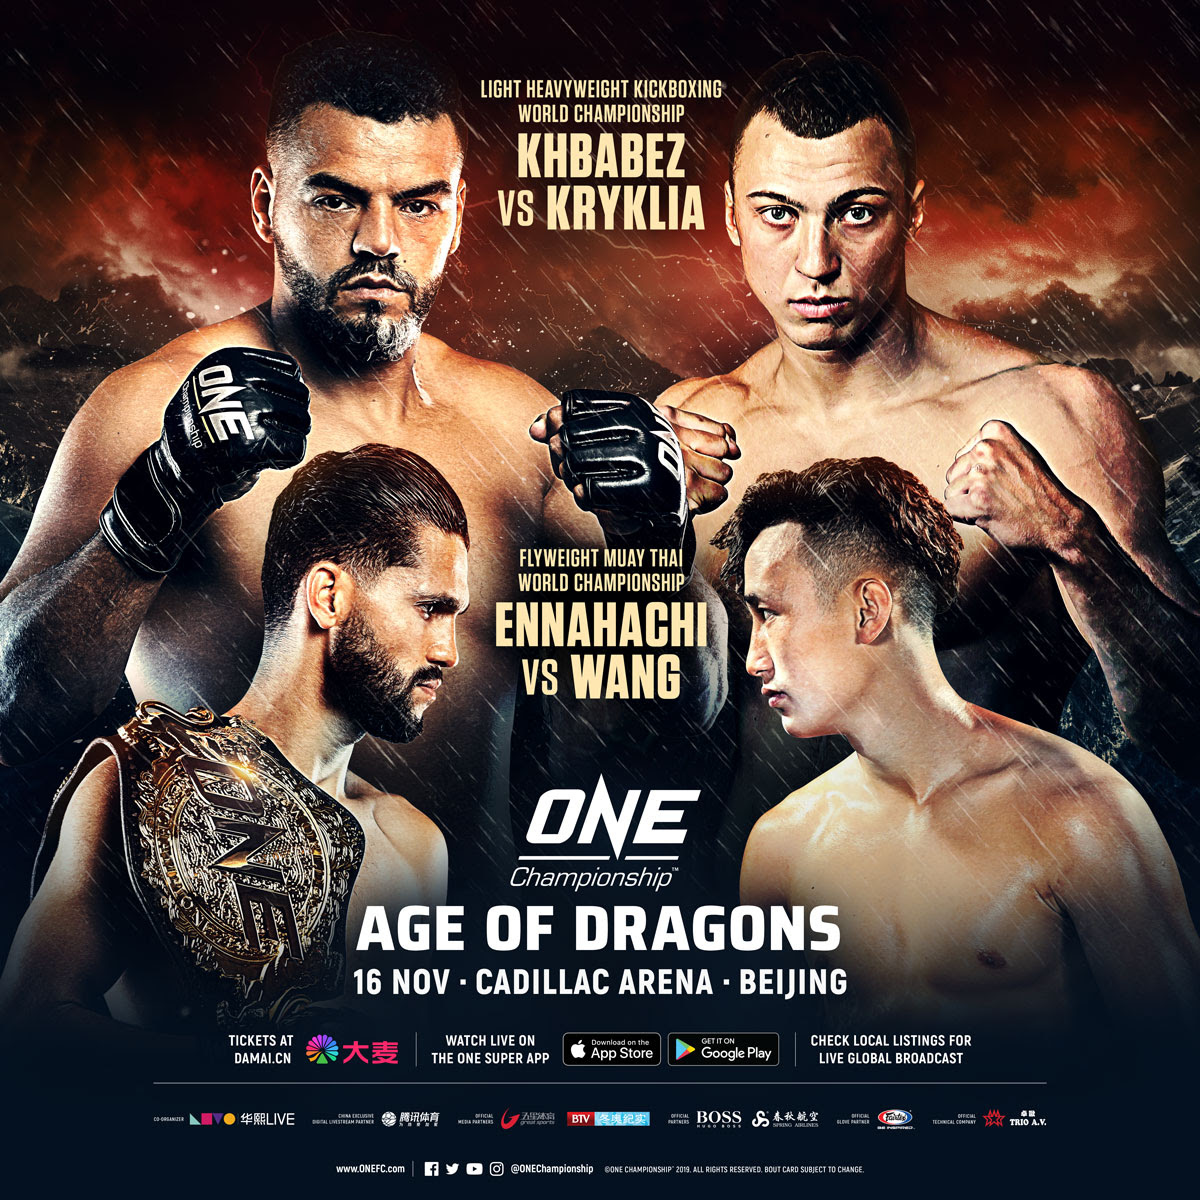 ILIAS ENNAHACHI TO DEFEND ONE FLYWEIGHT KICKBOXING WORLD TITLE AGAINST WANG WENFENG - ONEChampionship